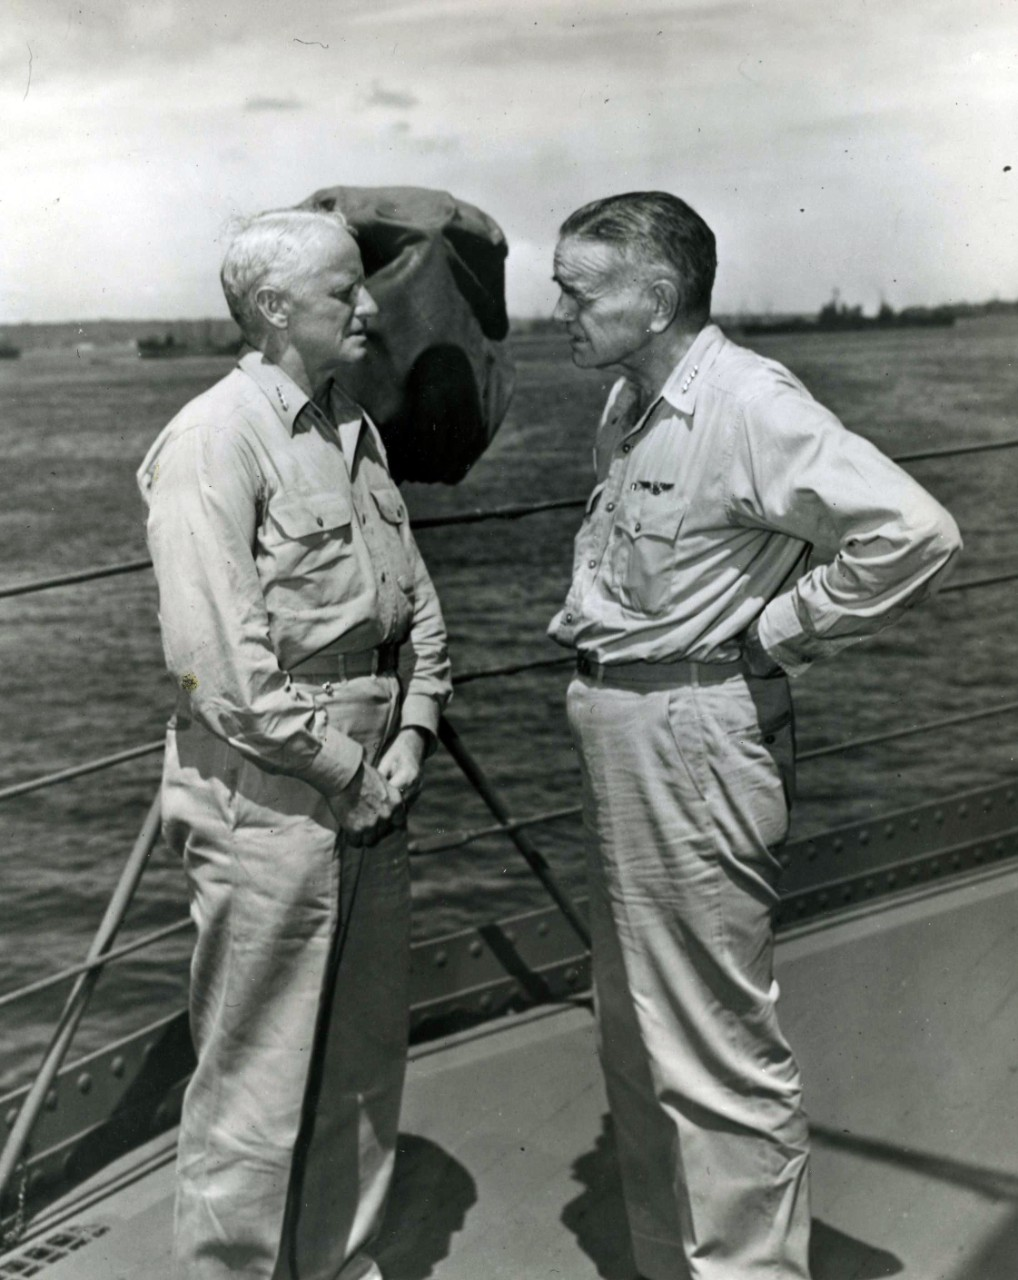 "Admiral Chester W. Nimitz, USN, Commander in Chief Pacific and Pacific Ocean Areas (left), and Admiral William F. Halsey, USN, Commander, South Pacific Area and South Pacific Force, confer aboard USS Curtiss (AV-4) at ""Button"" Naval Base, Espiritu Santo, New Hebrides, 20 January 1943."